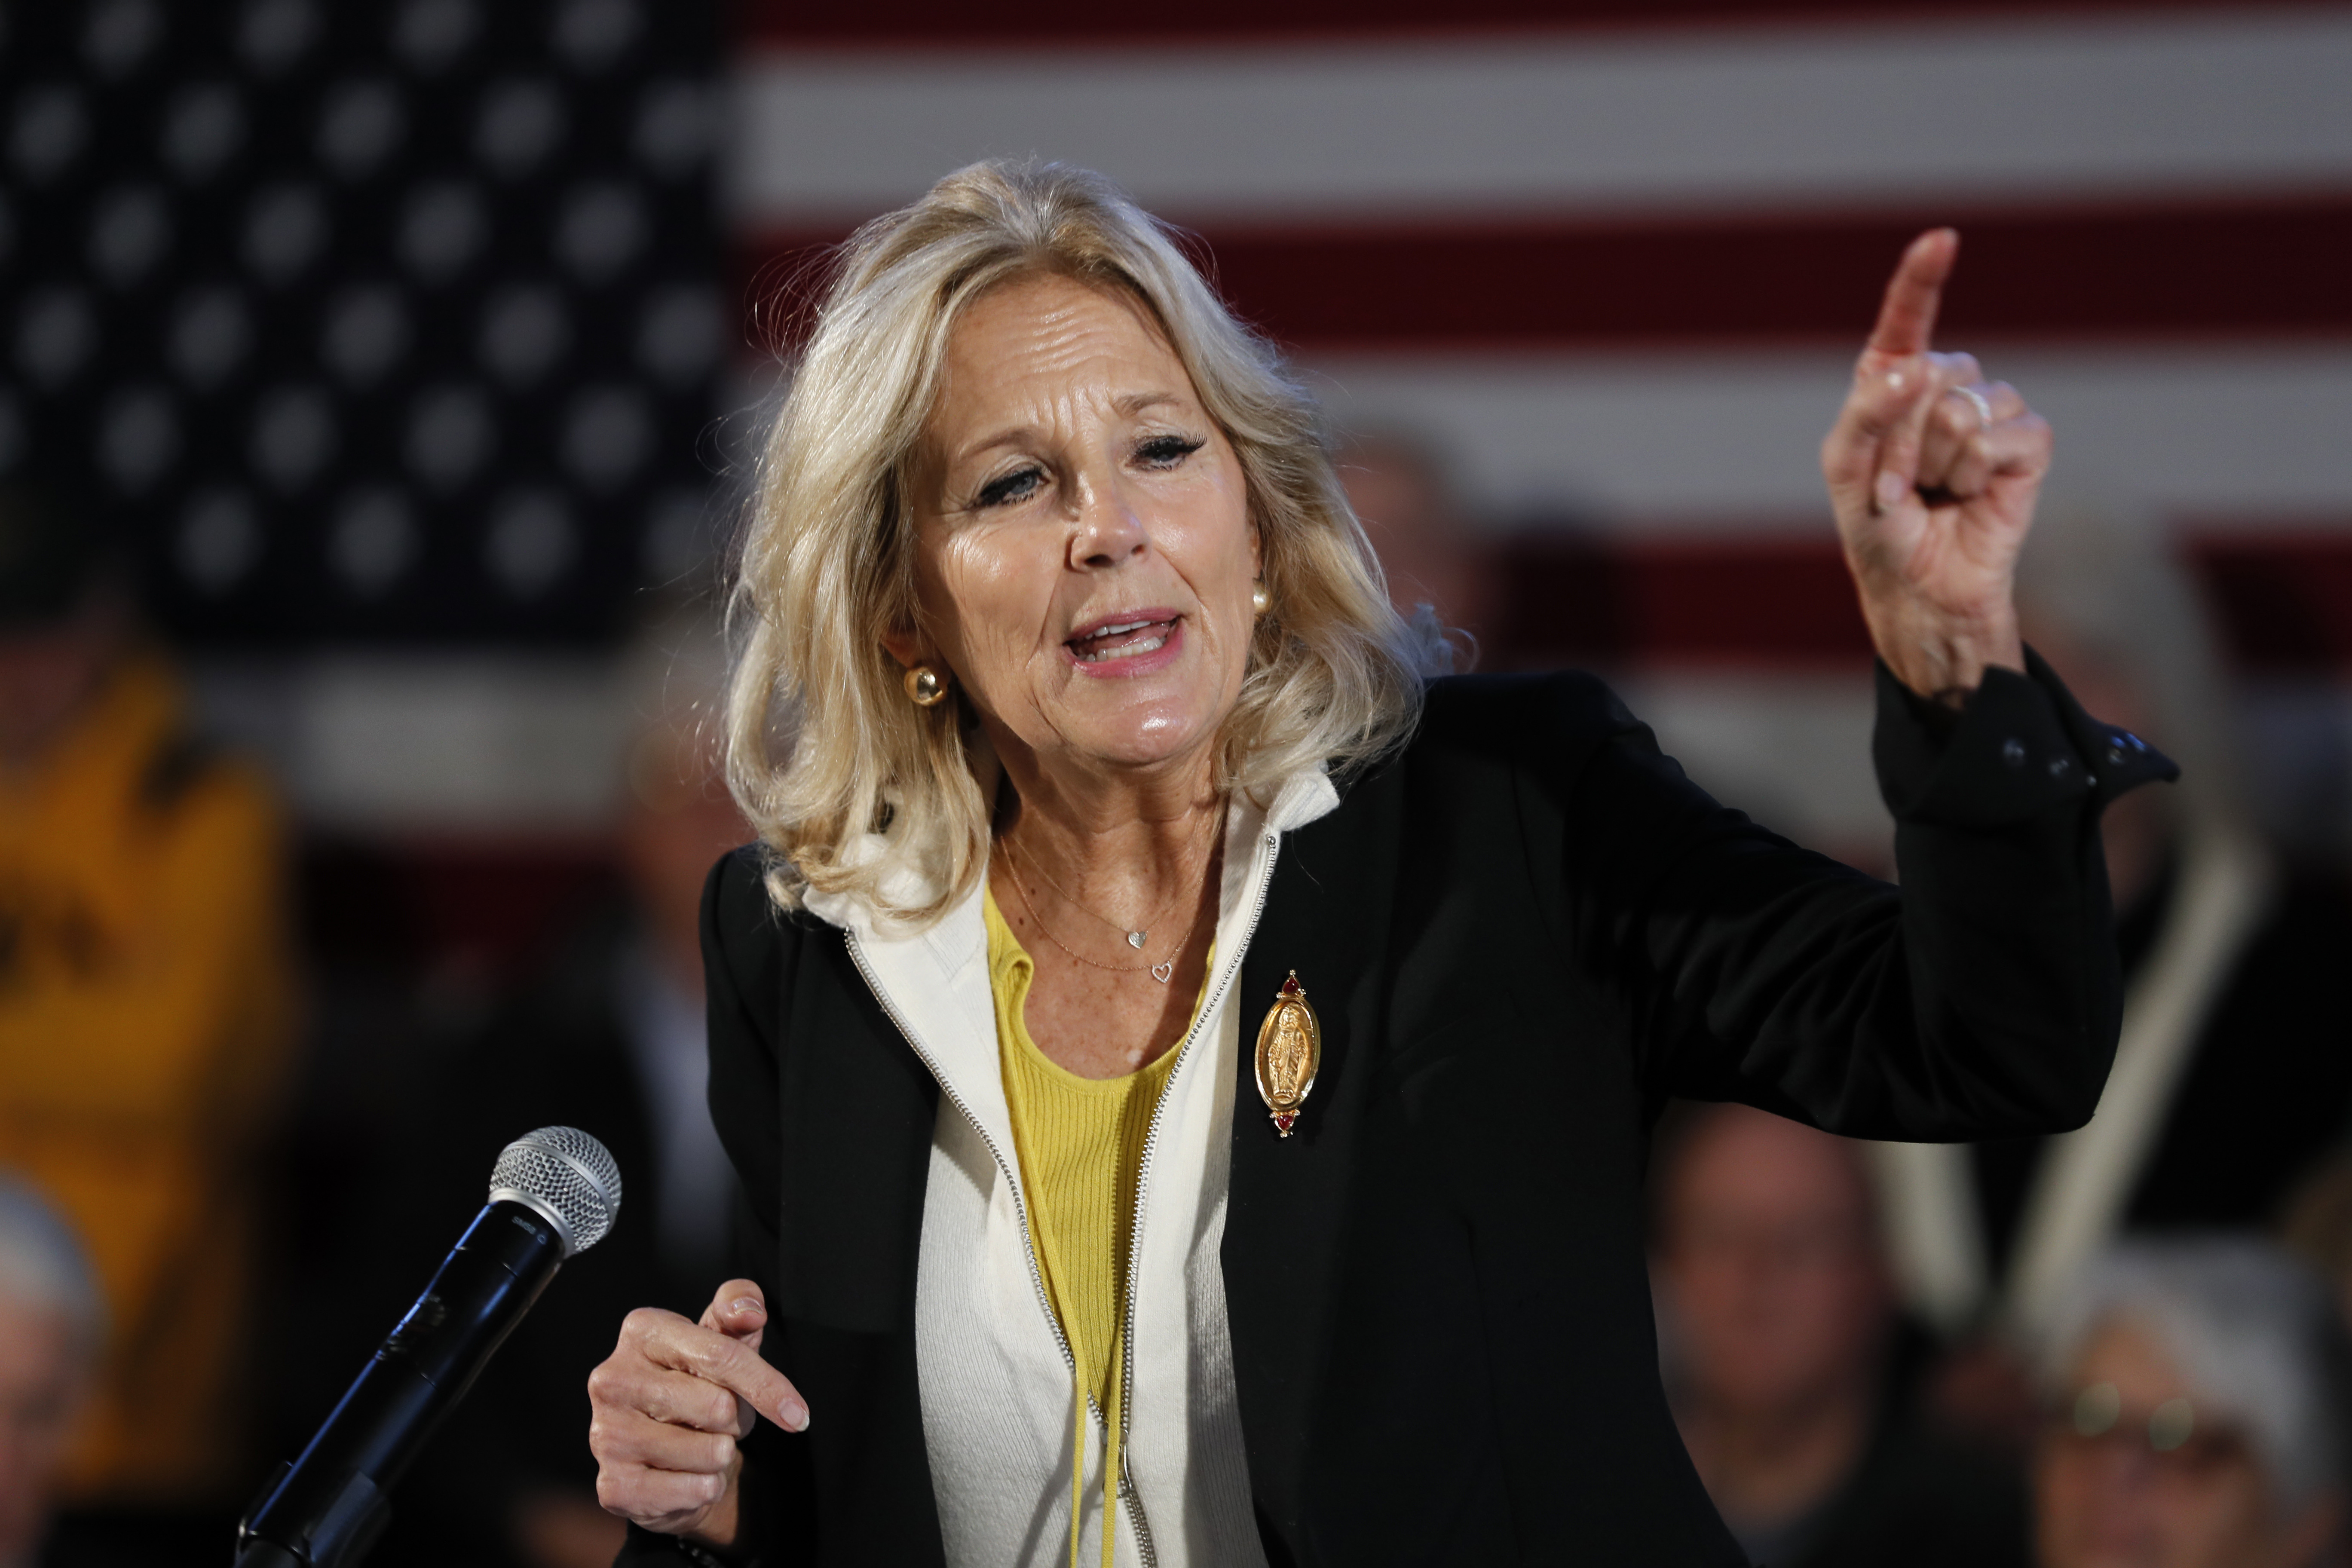 'Hunter did nothing wrong': Jill Biden defends son's 'character'